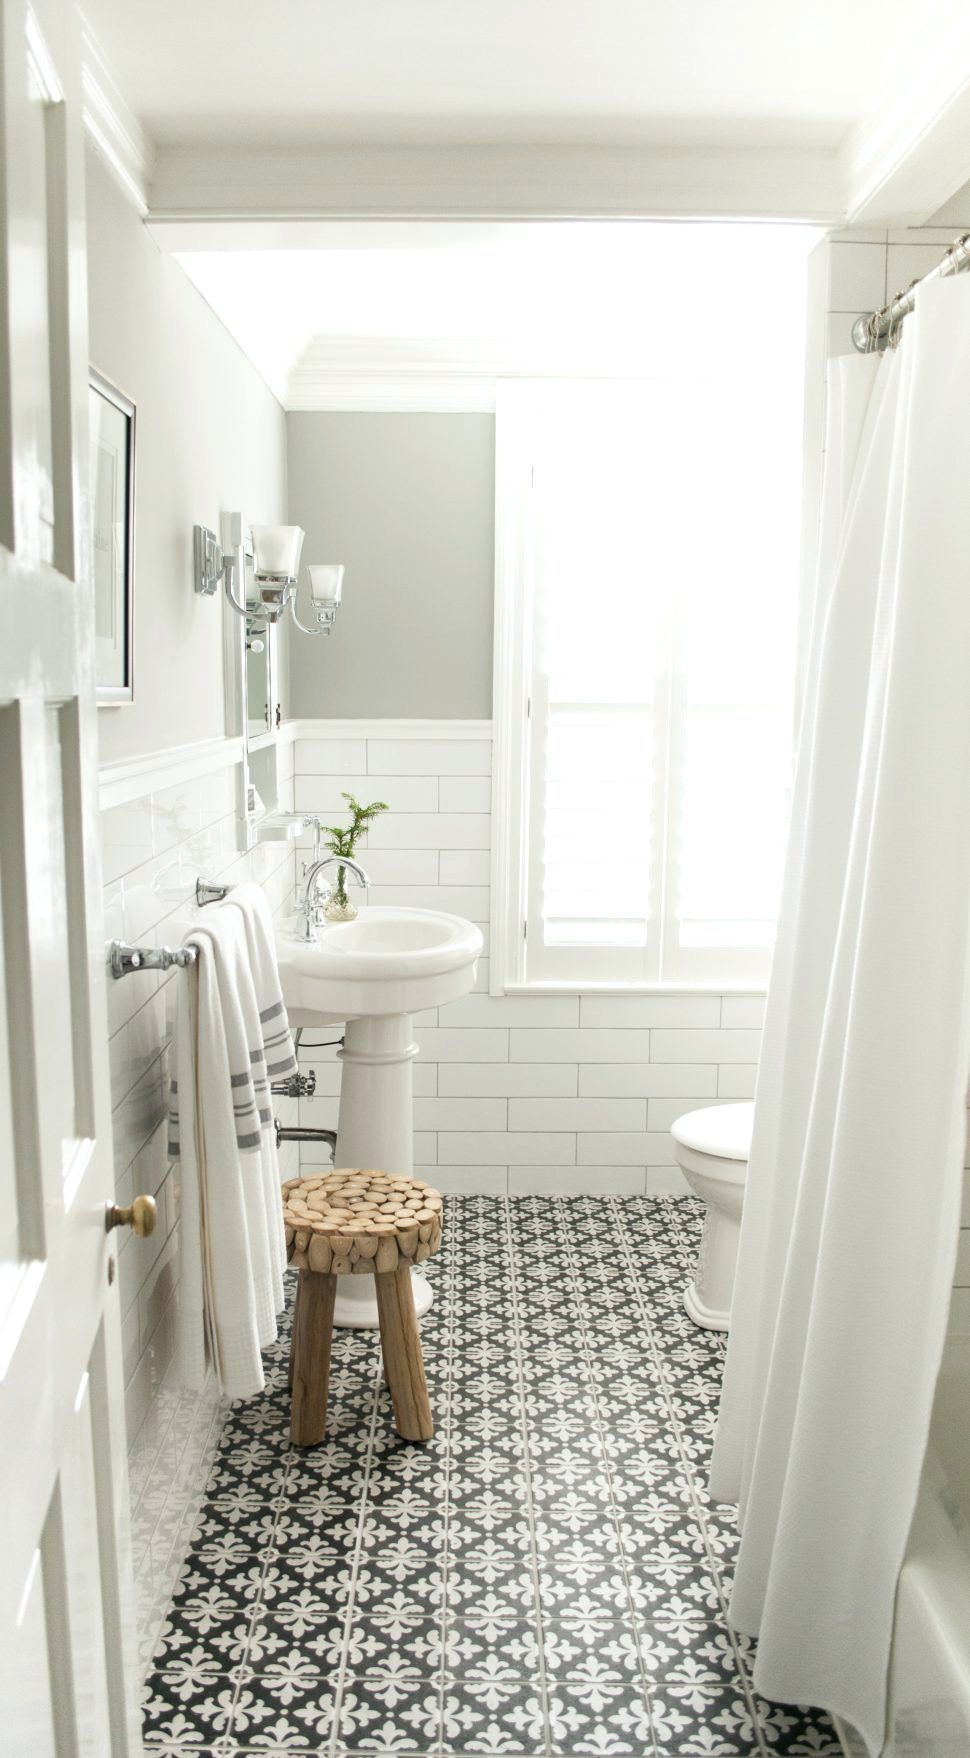 Tiles Grey And White Marble Subway Tile Master Bathroom White Subway Tile Modern Bathroom Bathroom Remodel Master Small Bathroom Remodel Bathroom Design Small